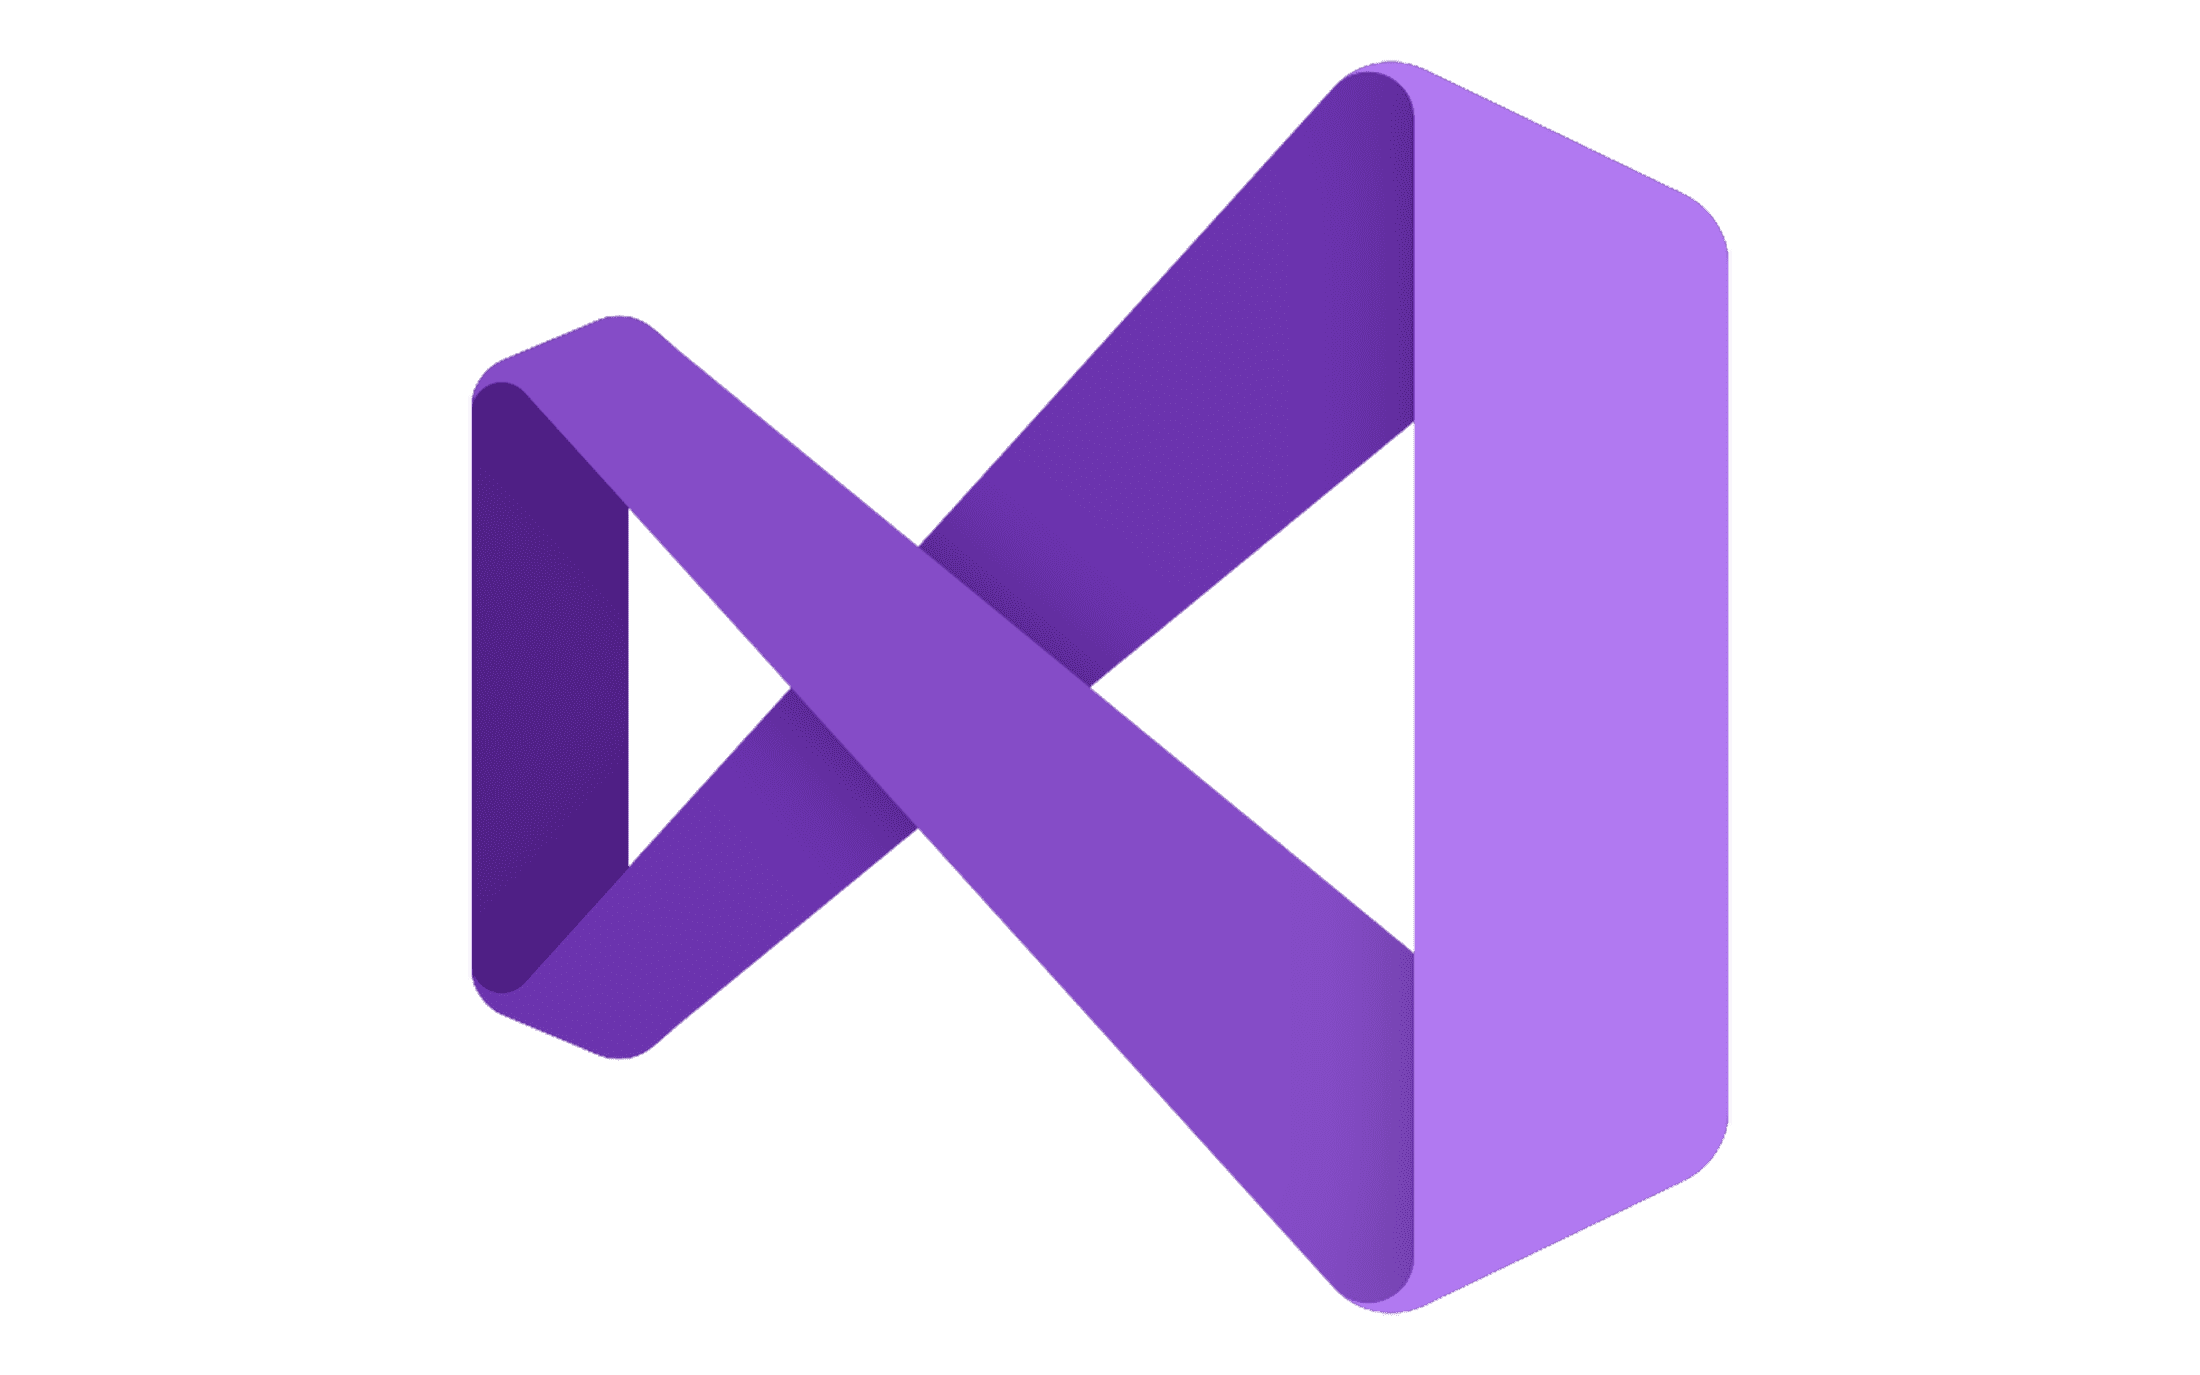 Visual Studio logo and symbol, meaning, history, PNG